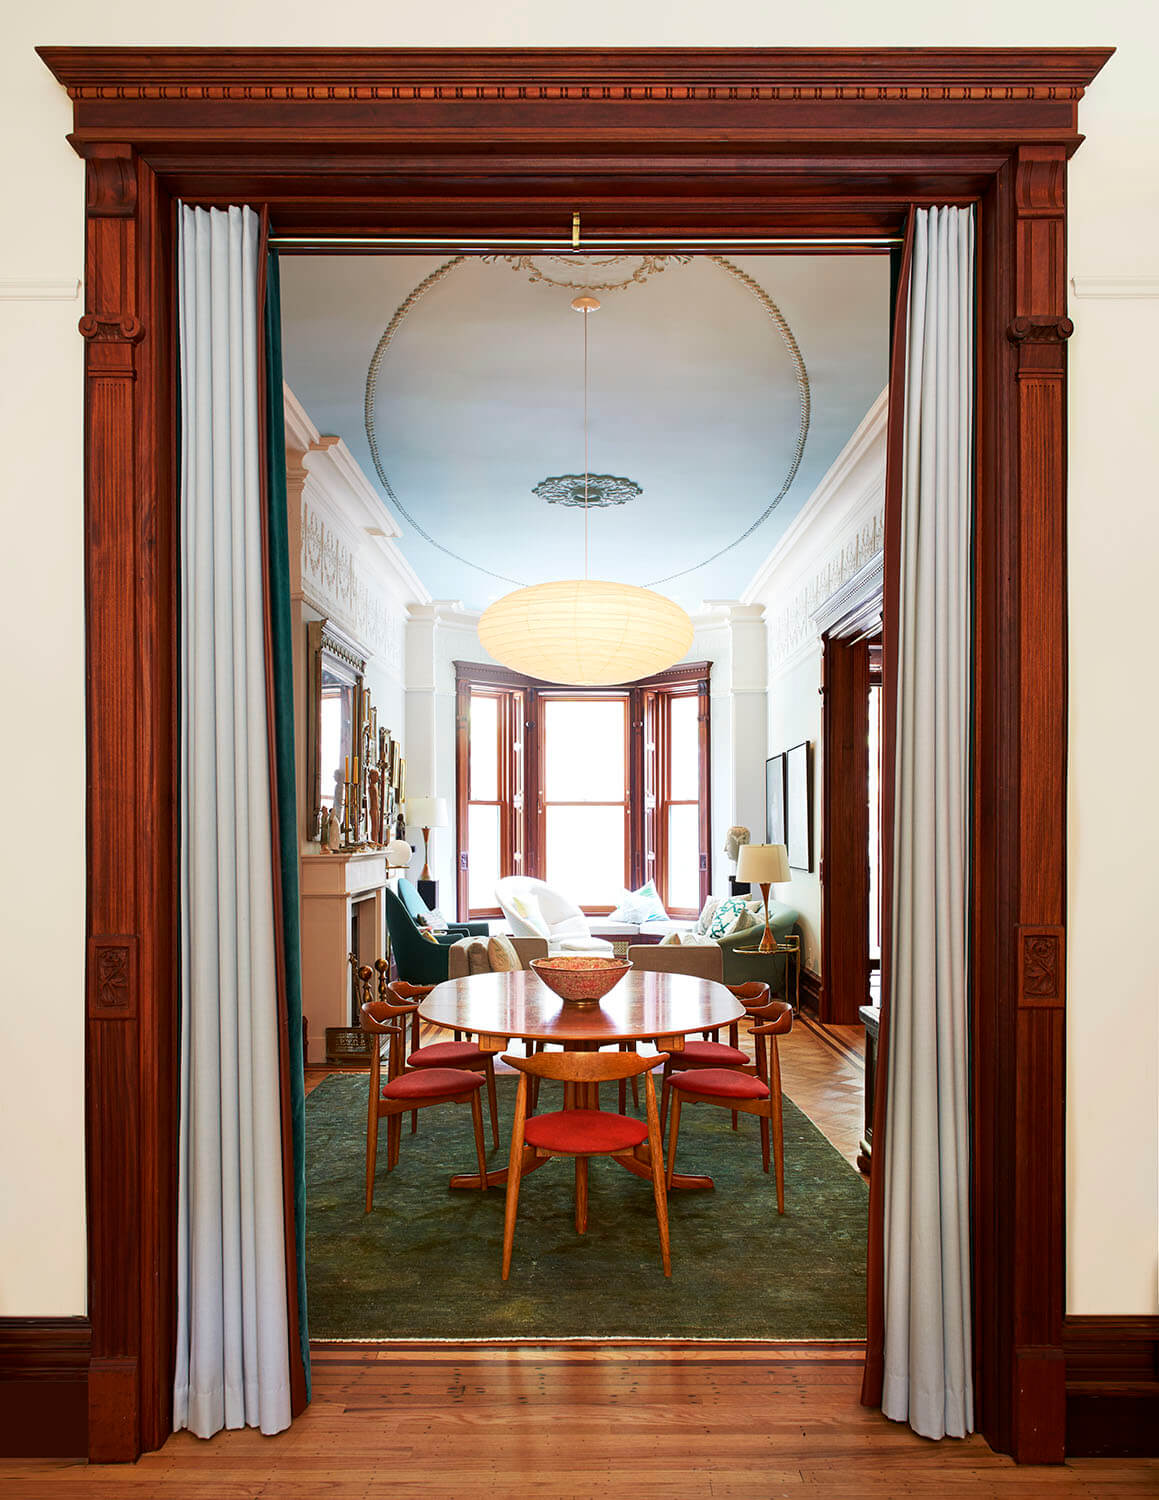 architects' restoration of this stately brownstone